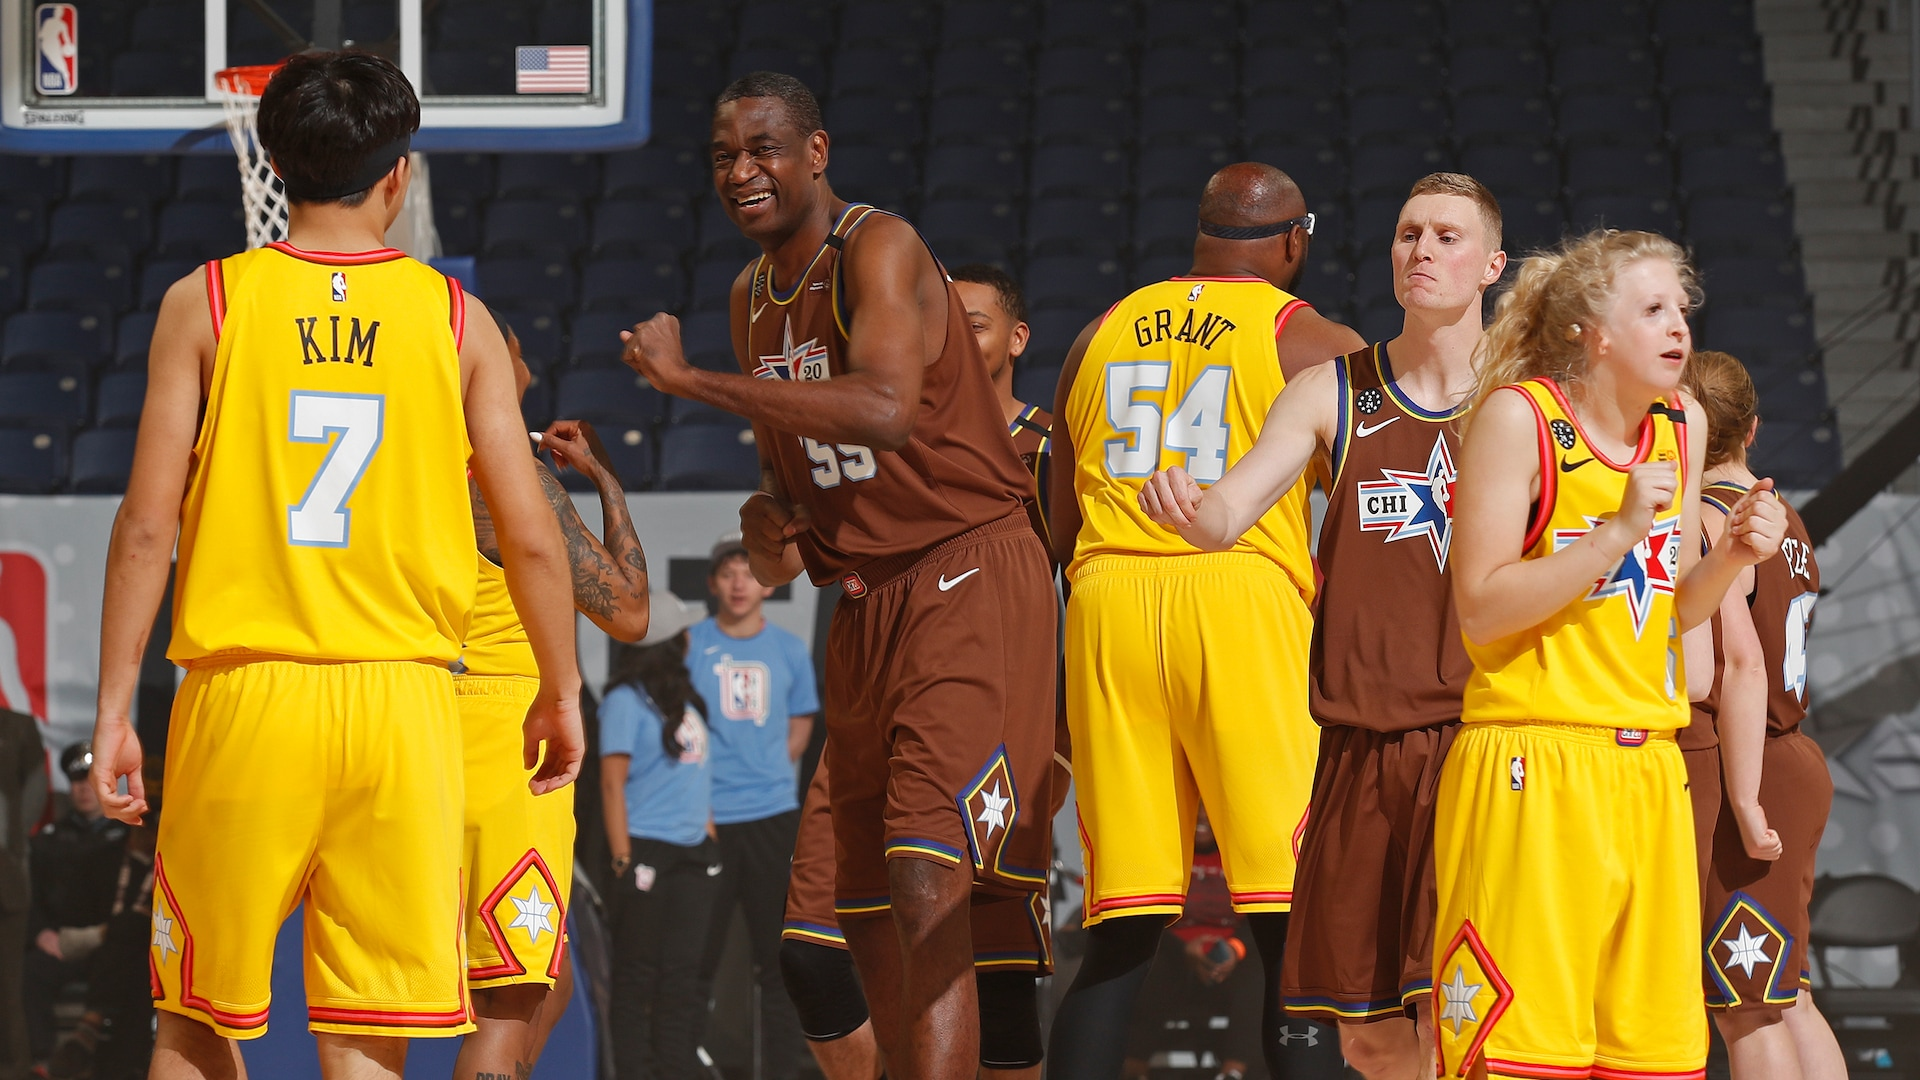 NBA, Special Olympics unite at All-Star